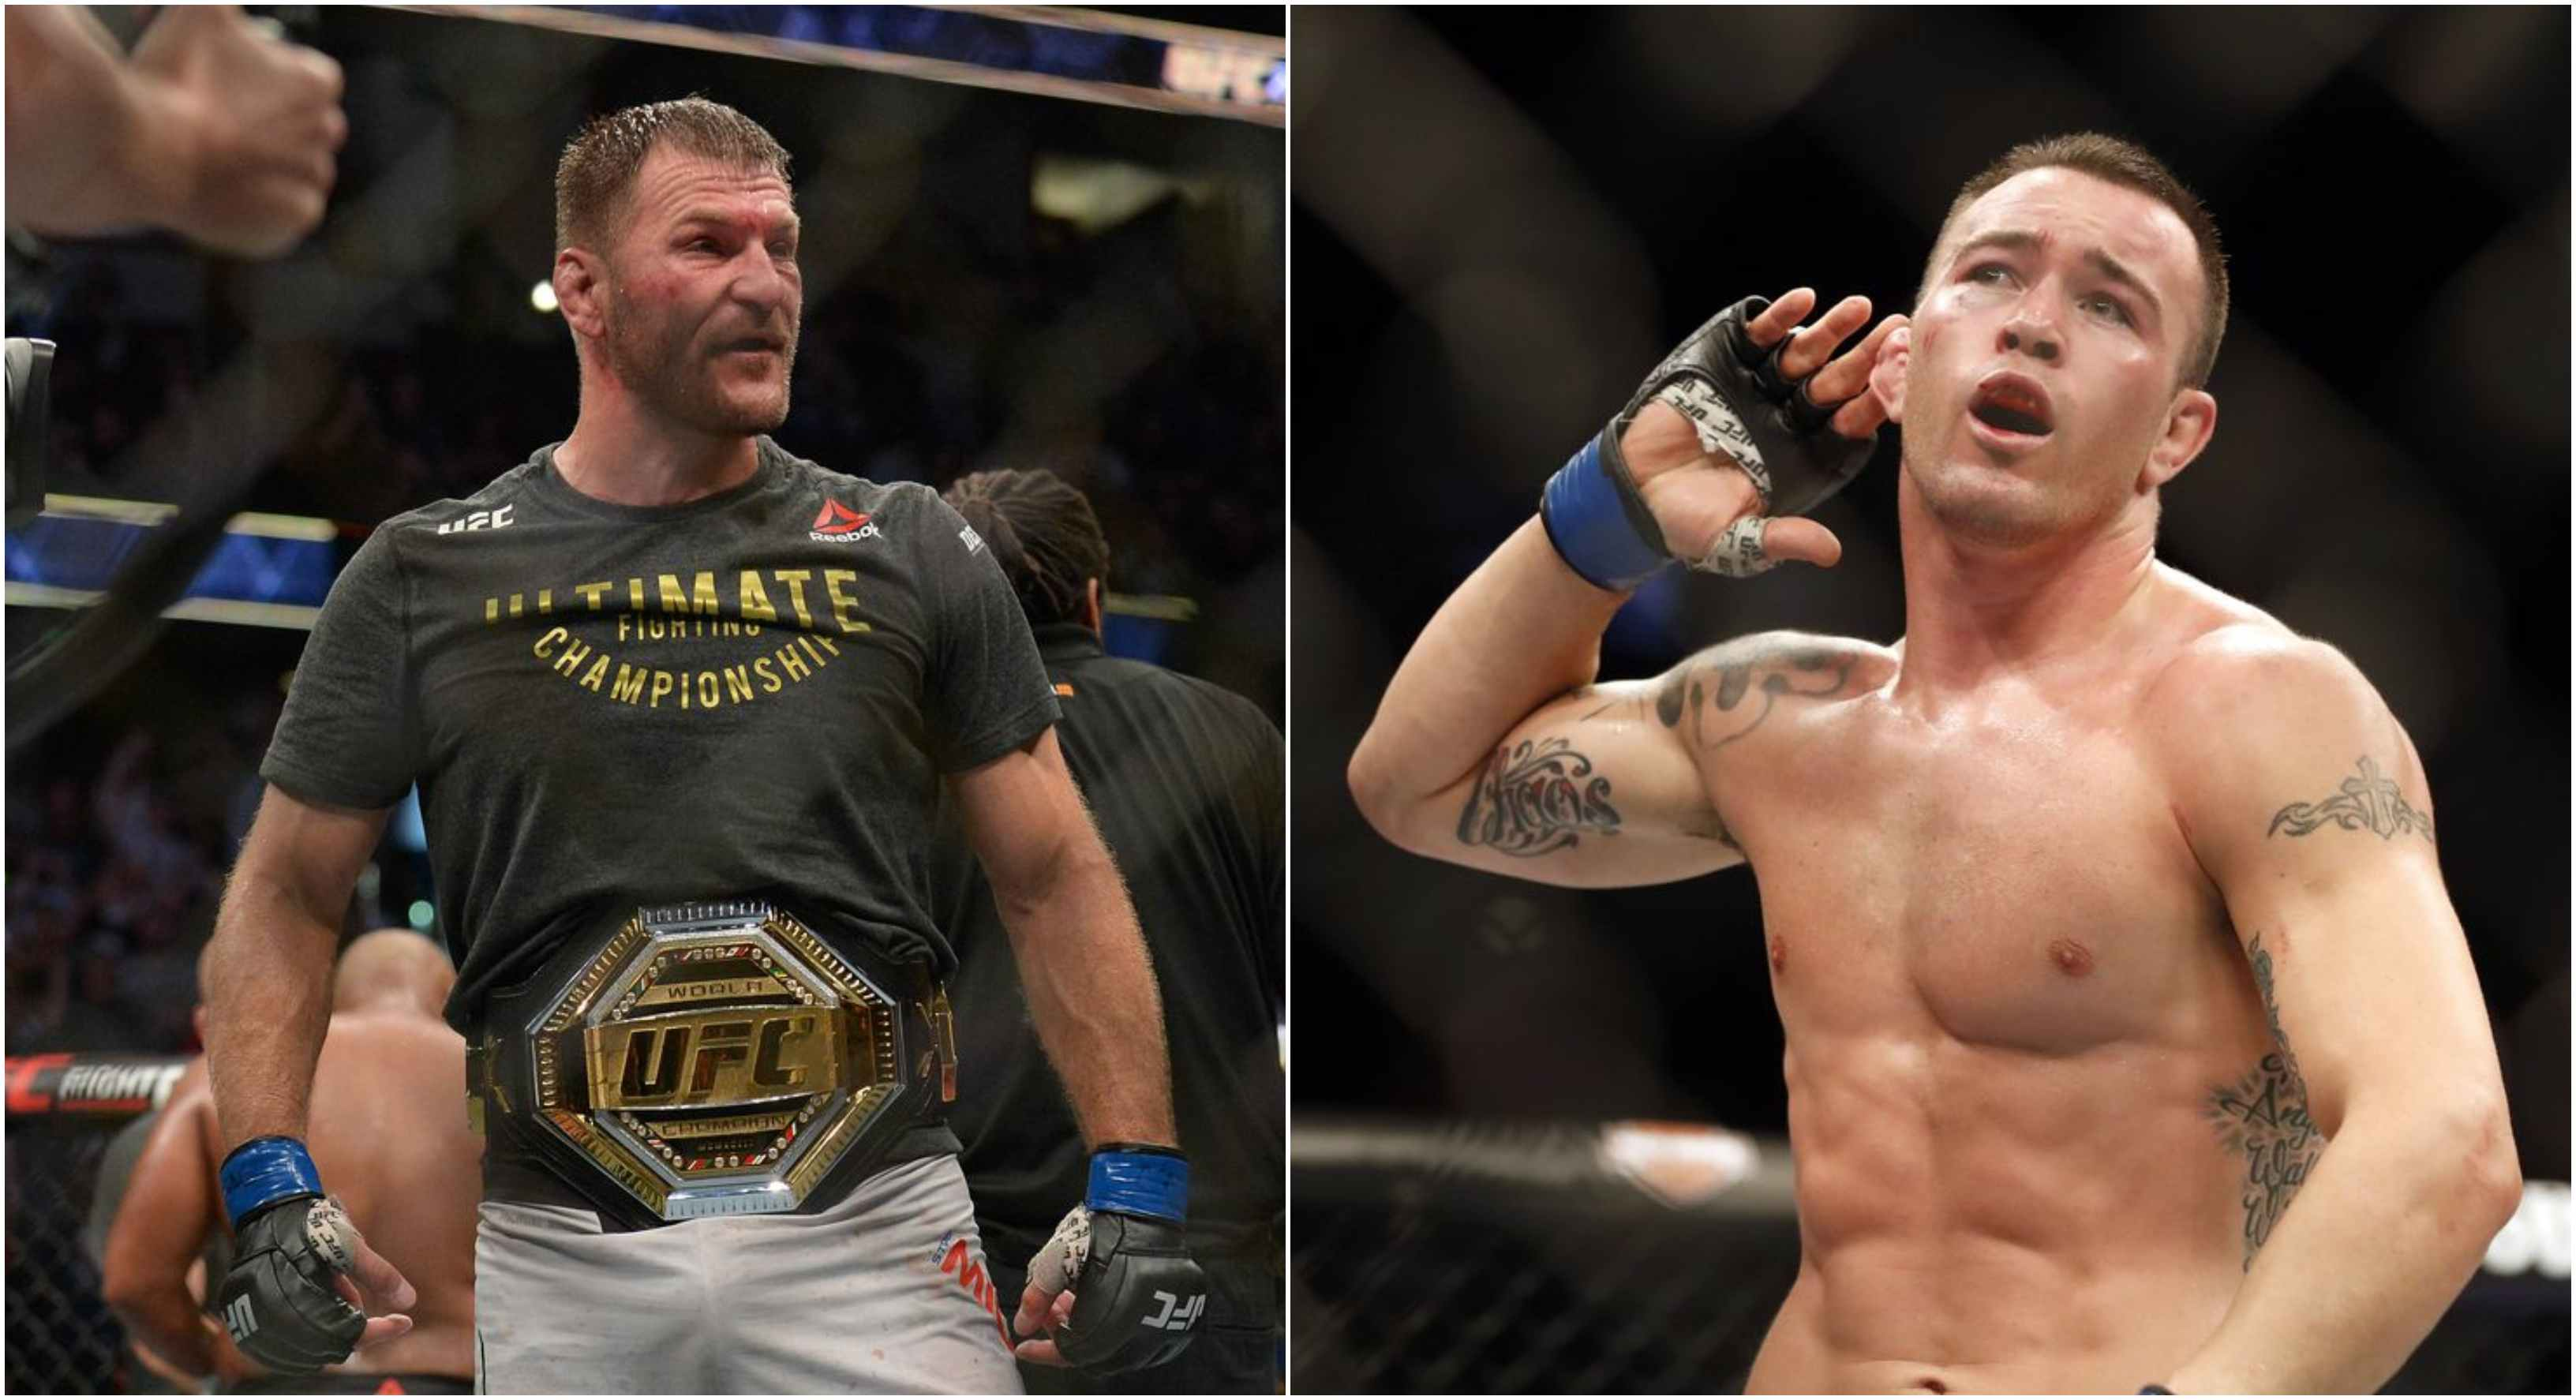 Stipe Miocic wants to have a chat with Colby Covington for things he said to his wife - Miocic